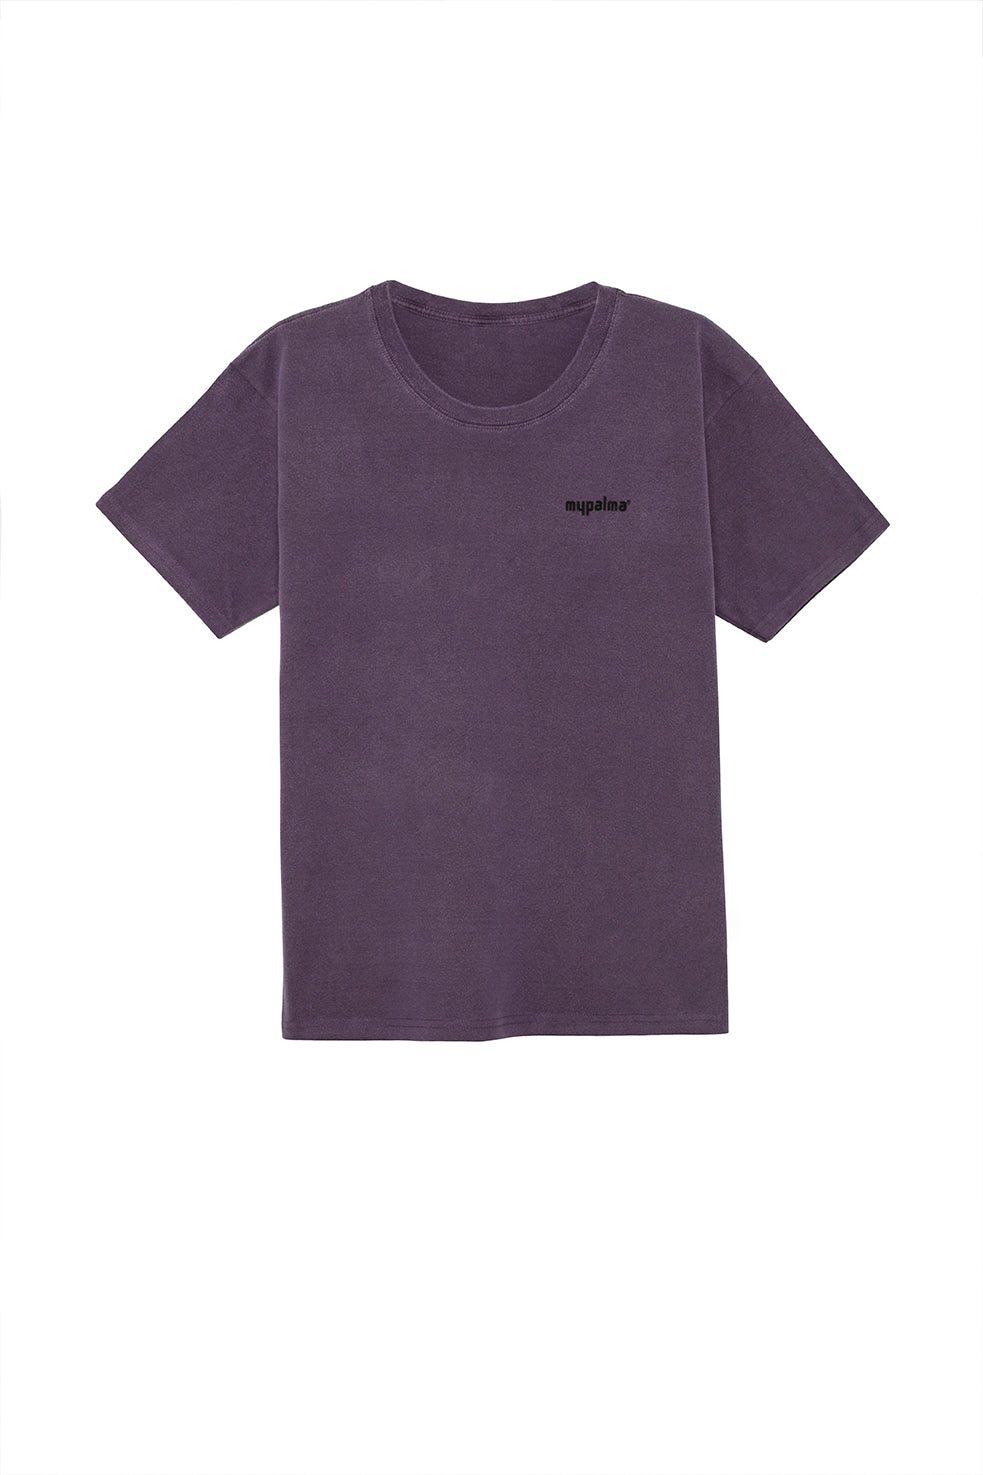 LOGO VINTAGE PURPLE SHORT SLEEVE